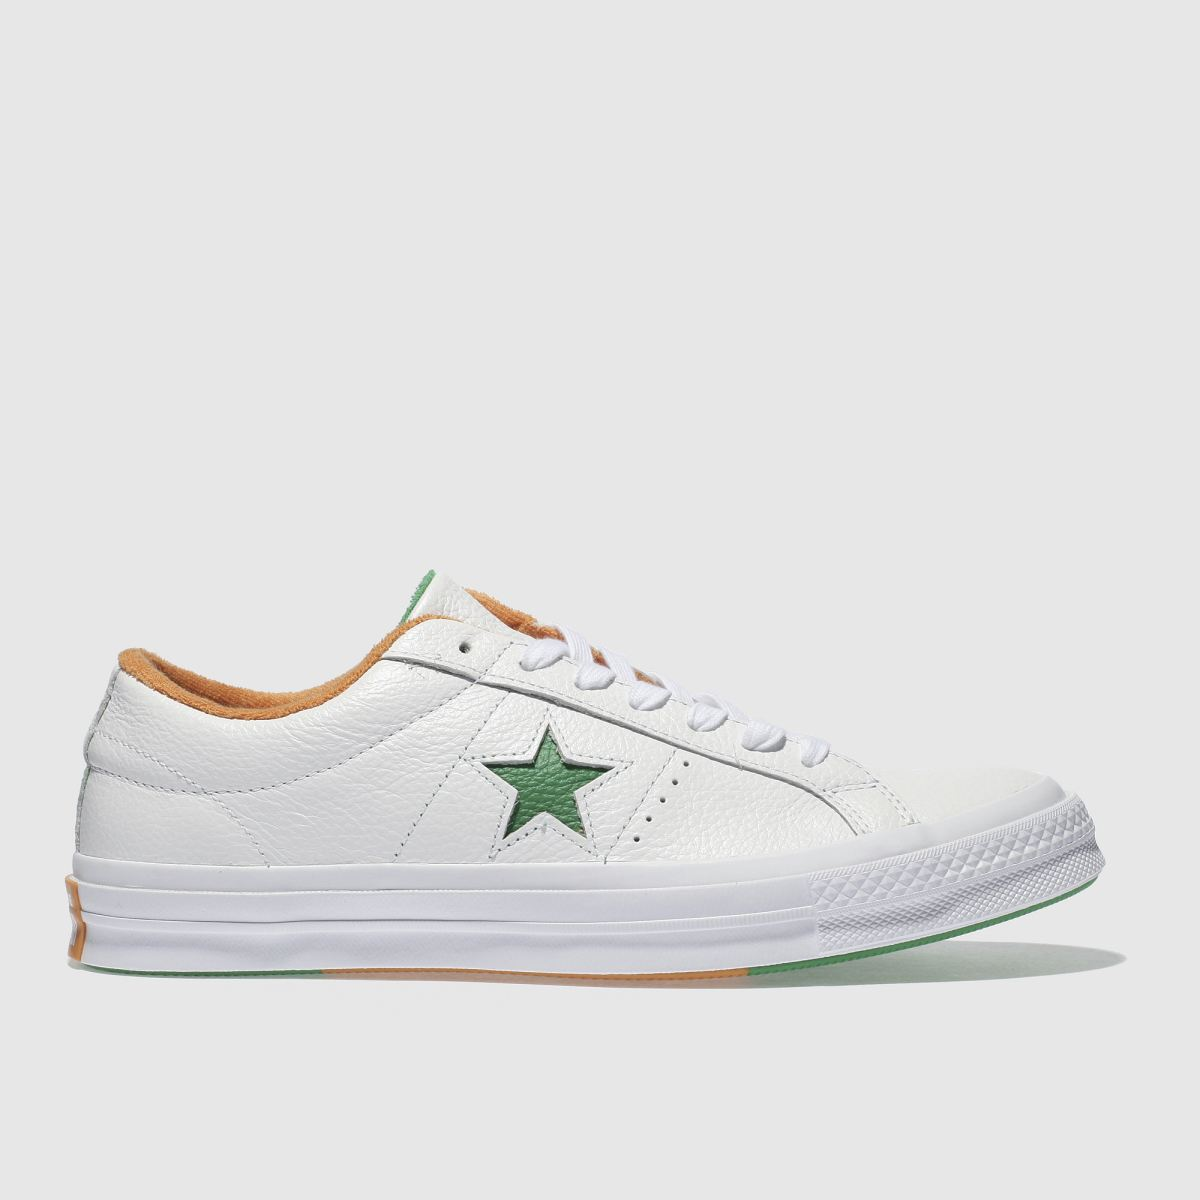 Converse White & Green One Star Ox Trainers